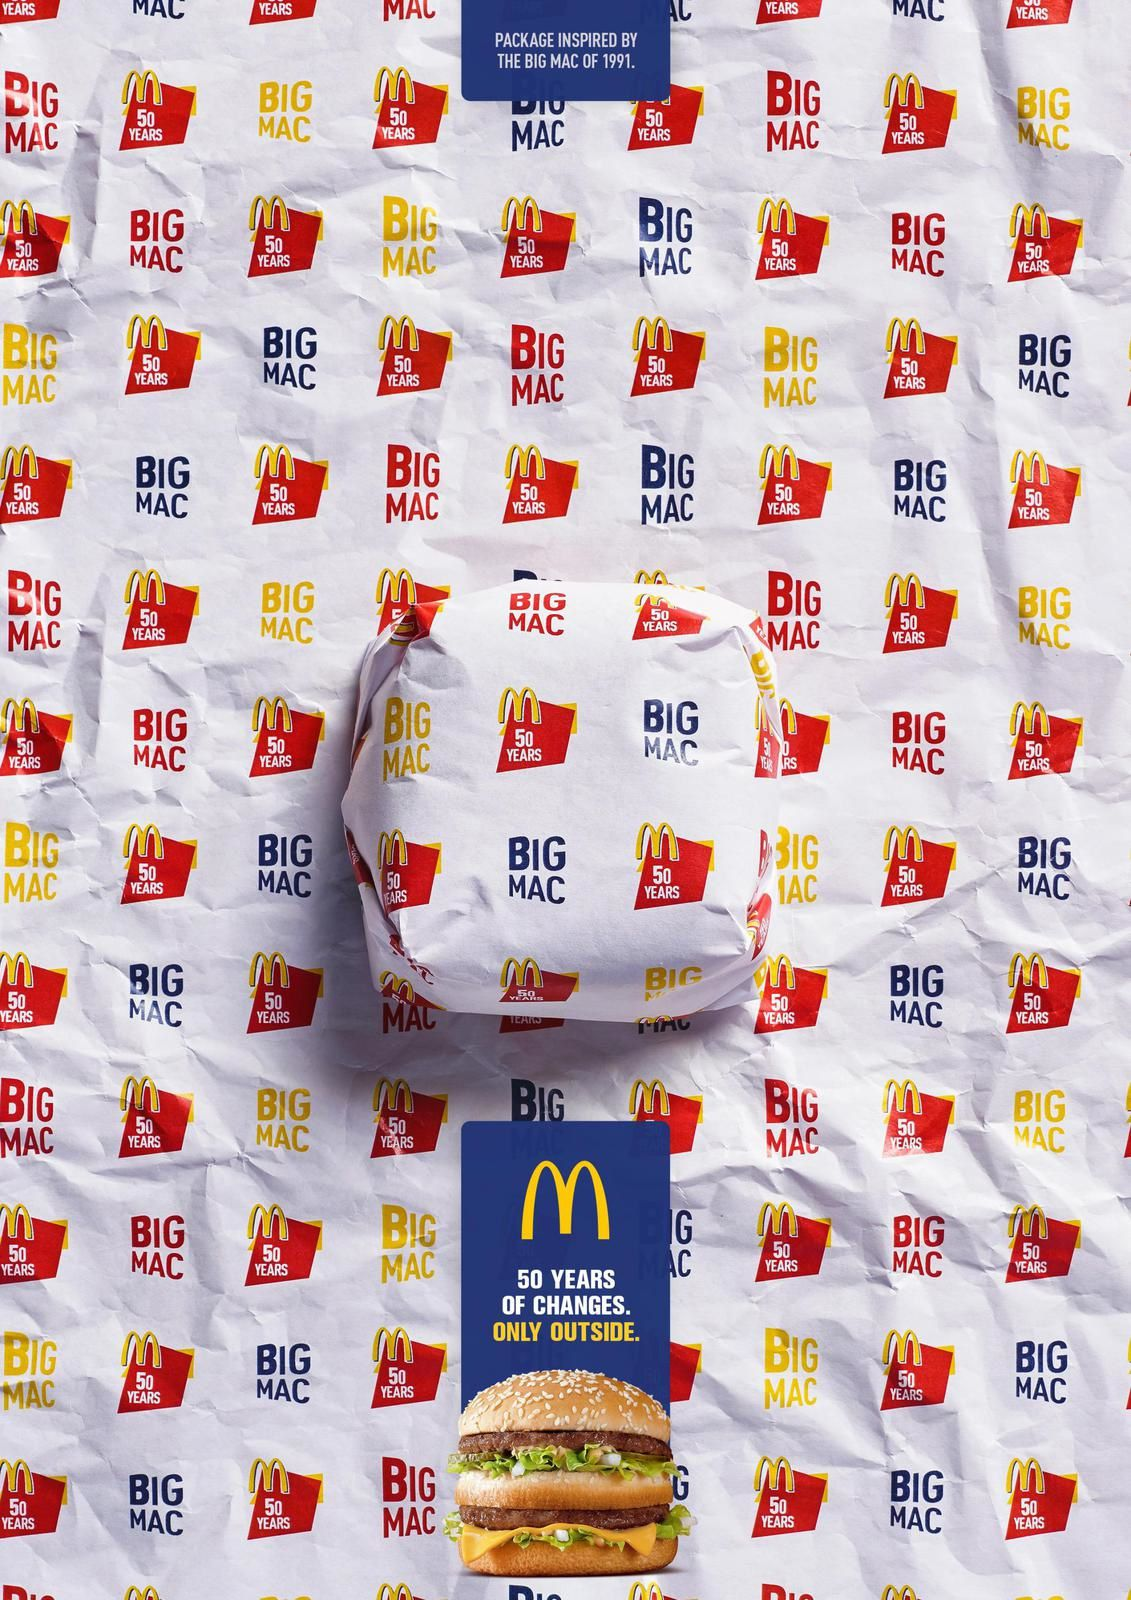 """Big Mac - Packed in History - 1991 I McDonald's : """"Package inspired by the Big Mac of 1968. 50 years of changes. Only outside"""""""